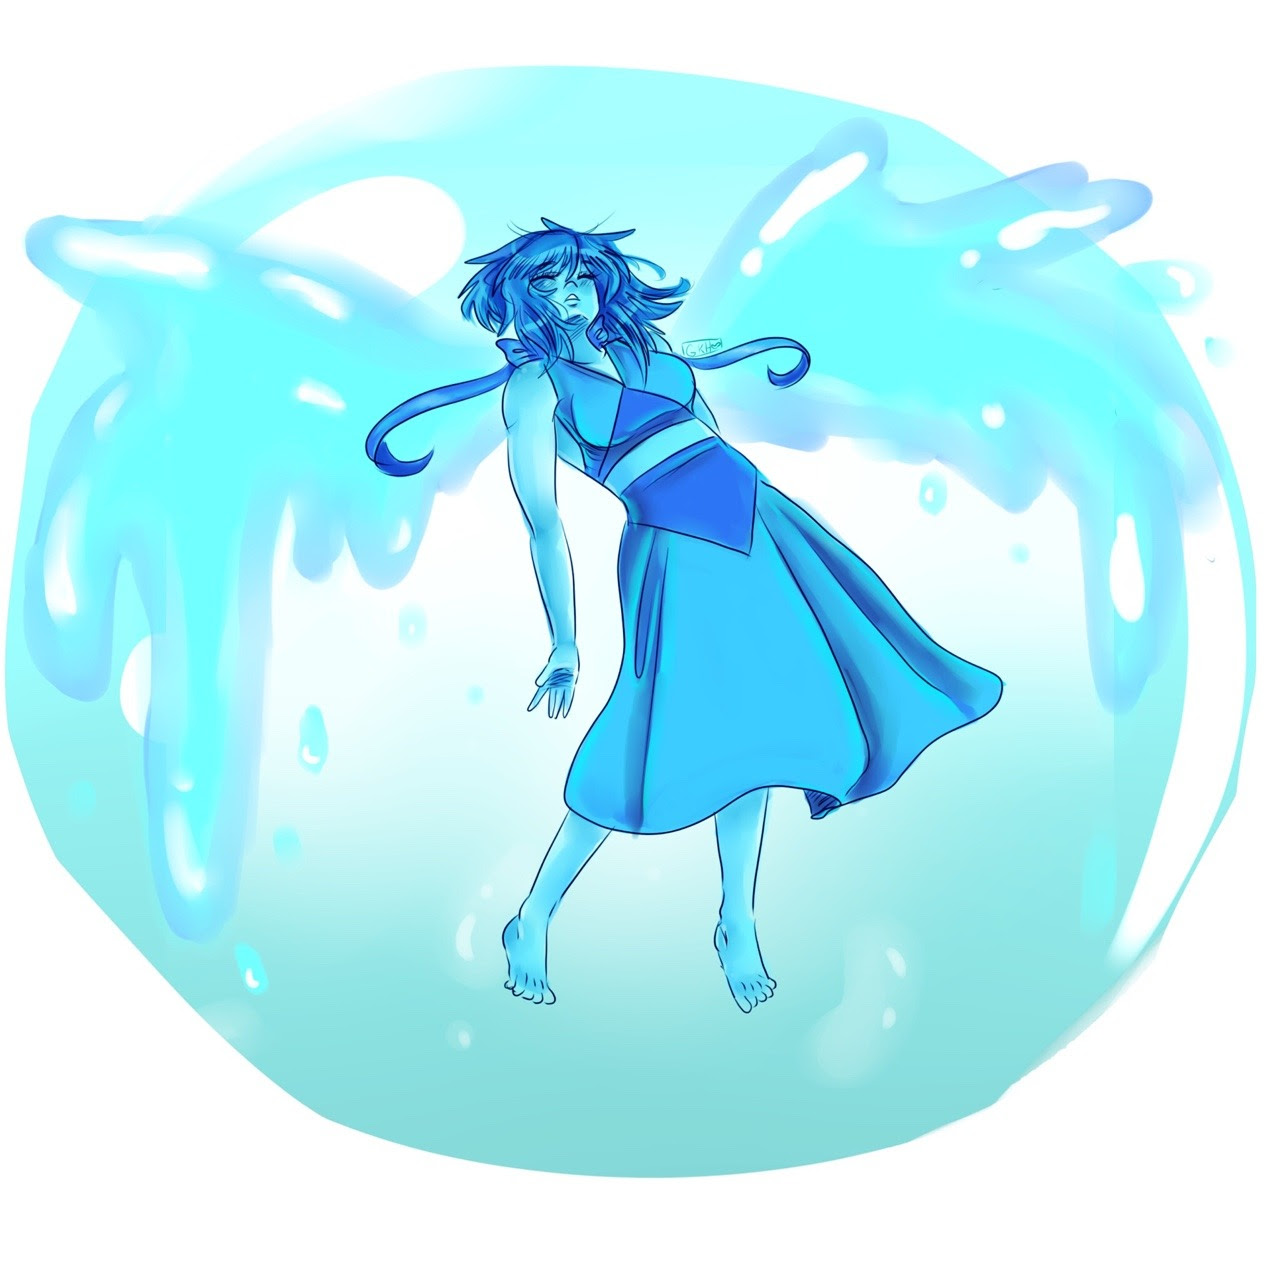 Drew lapis lazuli as a prize for the individual who won my coloring contest